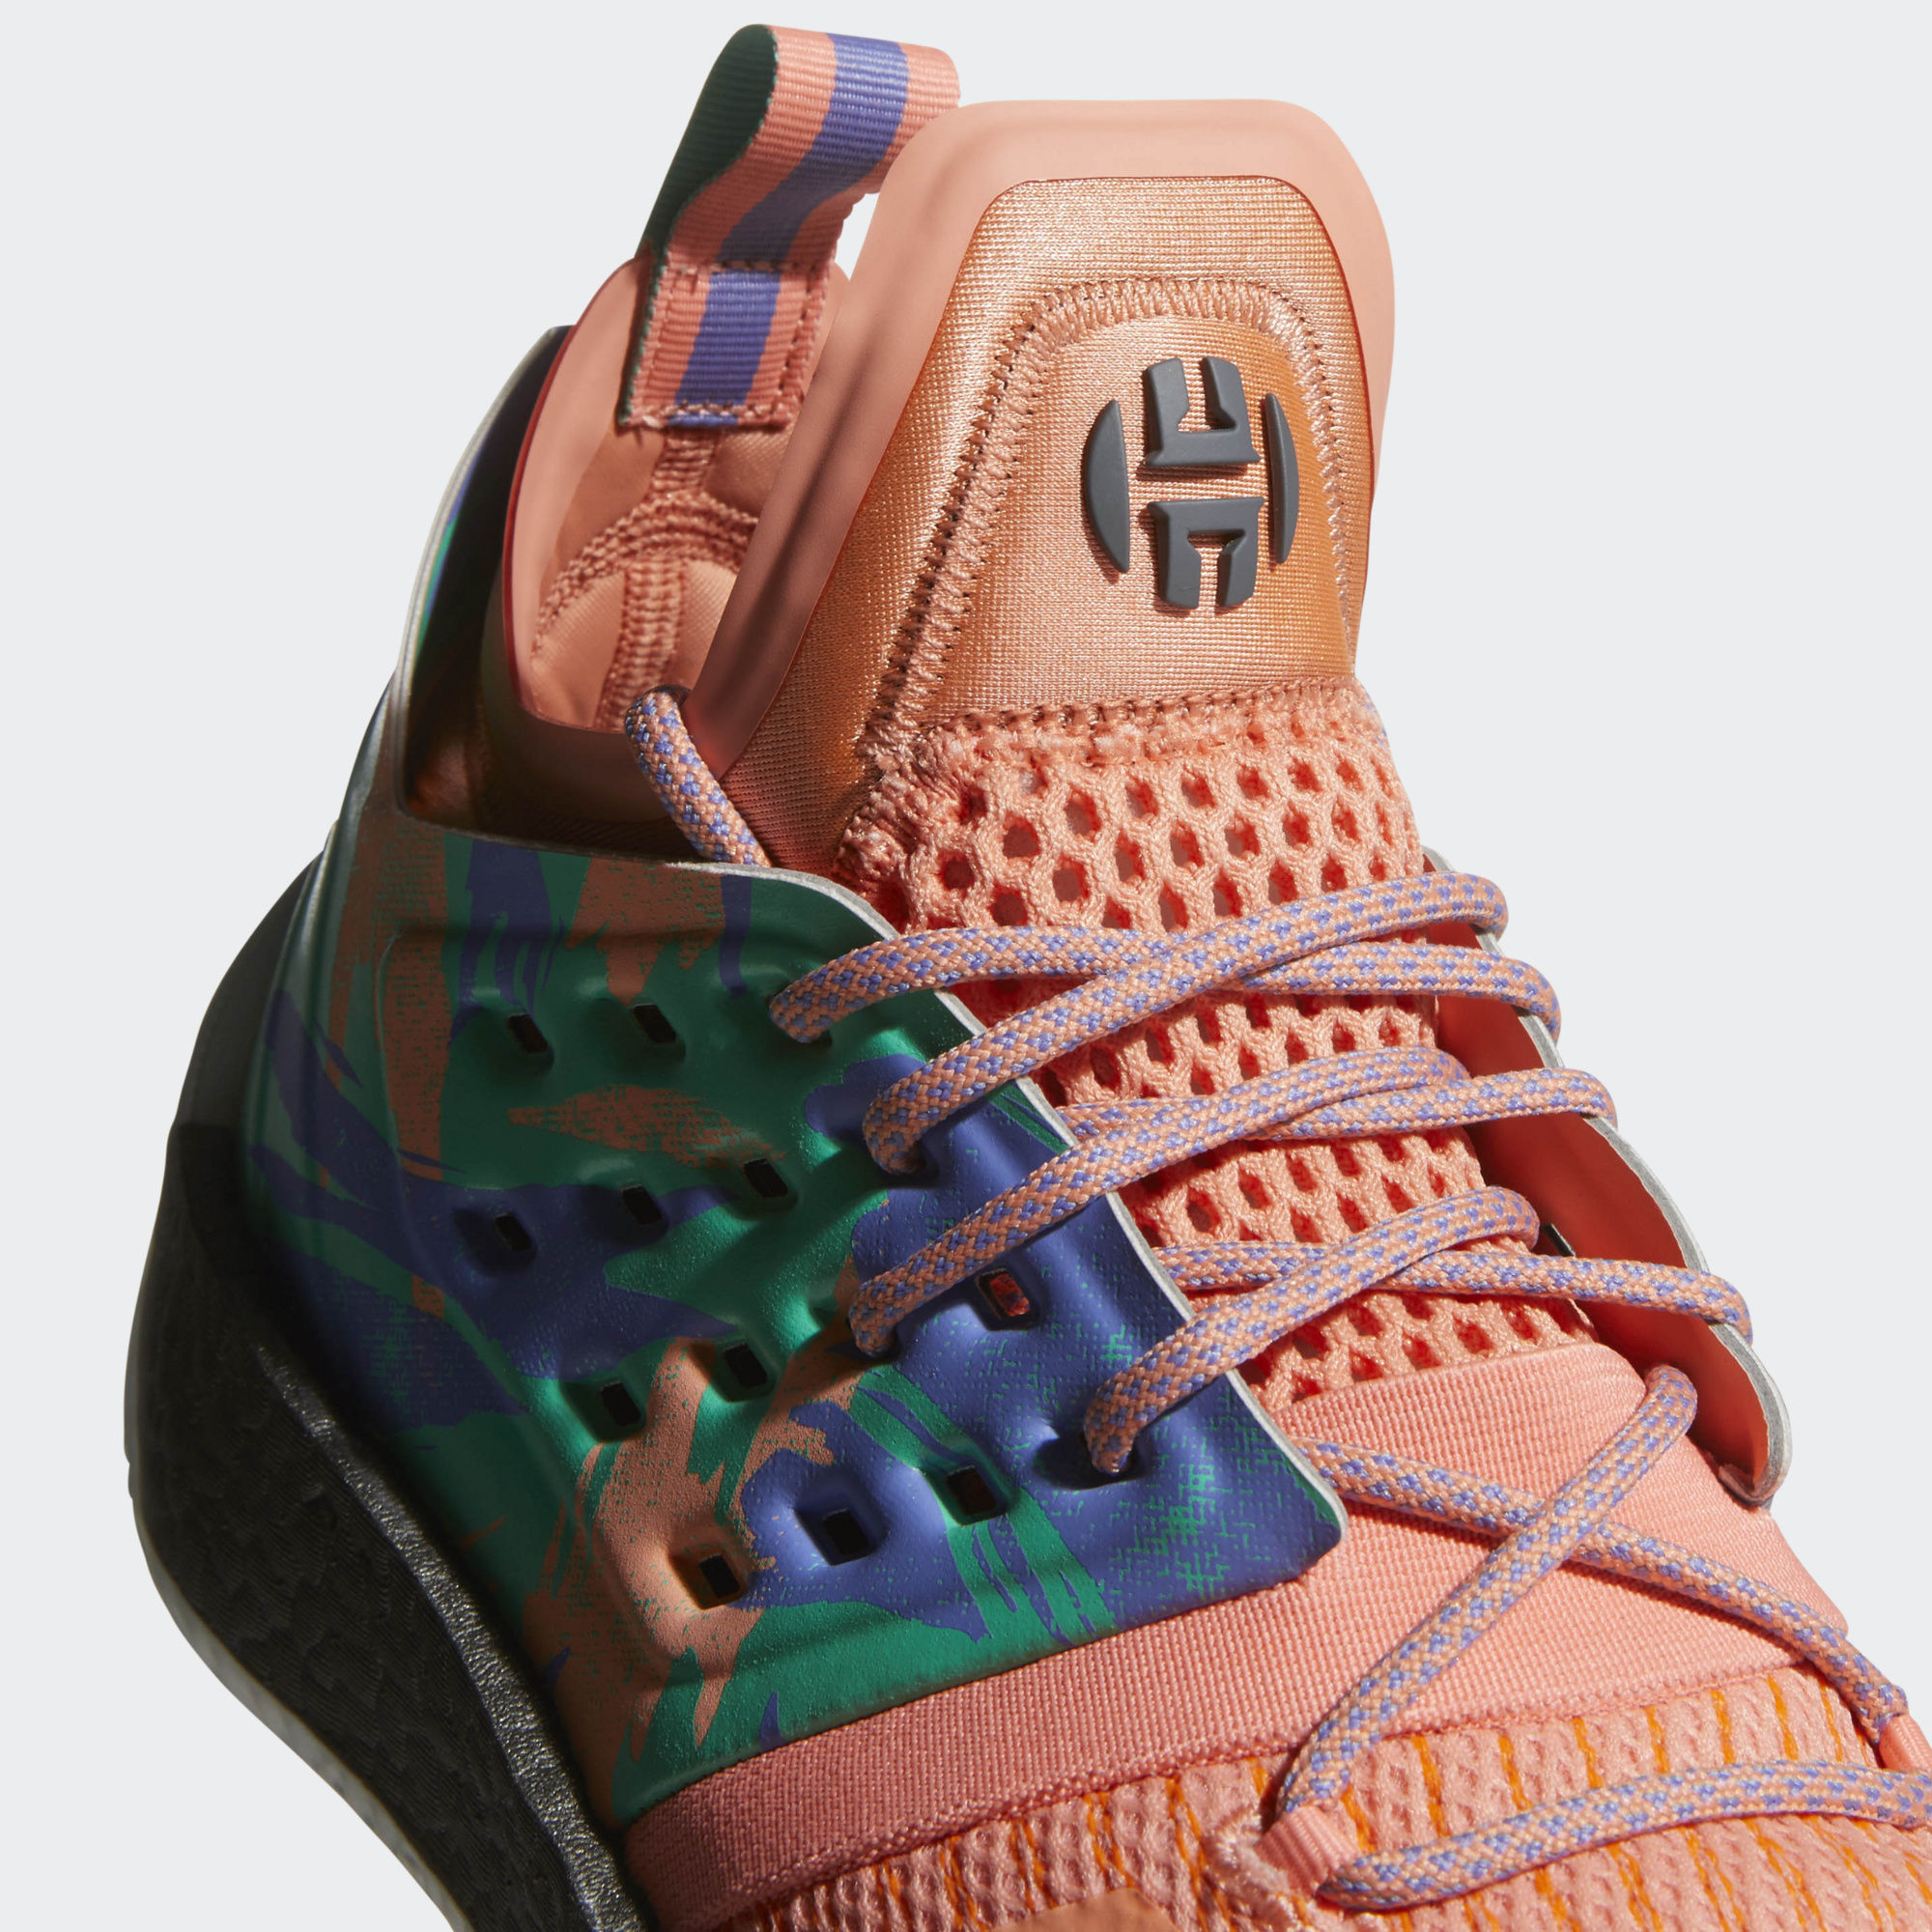 0e0e5f58377b ... lilac a2e12 c9c25  netherlands adidas releases james hardens second  signature shoe harden vol. 2 masses ab5c8 3499a